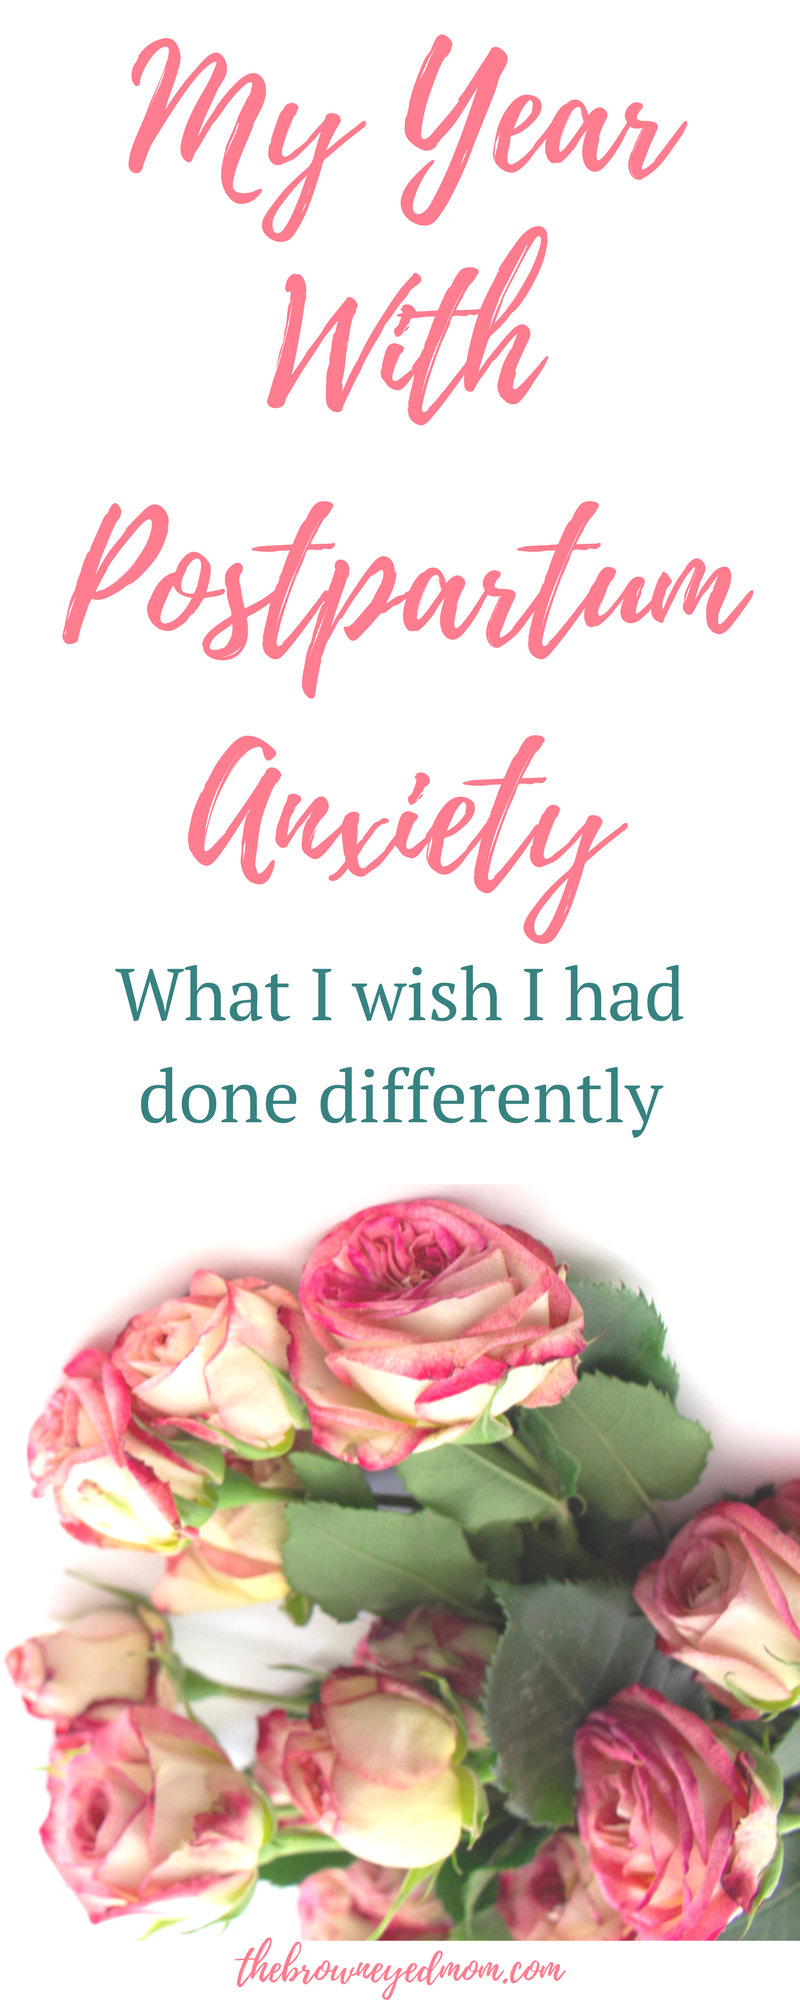 Postpartum anxiety is really no joke. I feel like postpartum depression gets talked about quite a bit, but postpartum anxiety doesn't have as much of a voice. Here's my story in dealing with #postpartumanxiety